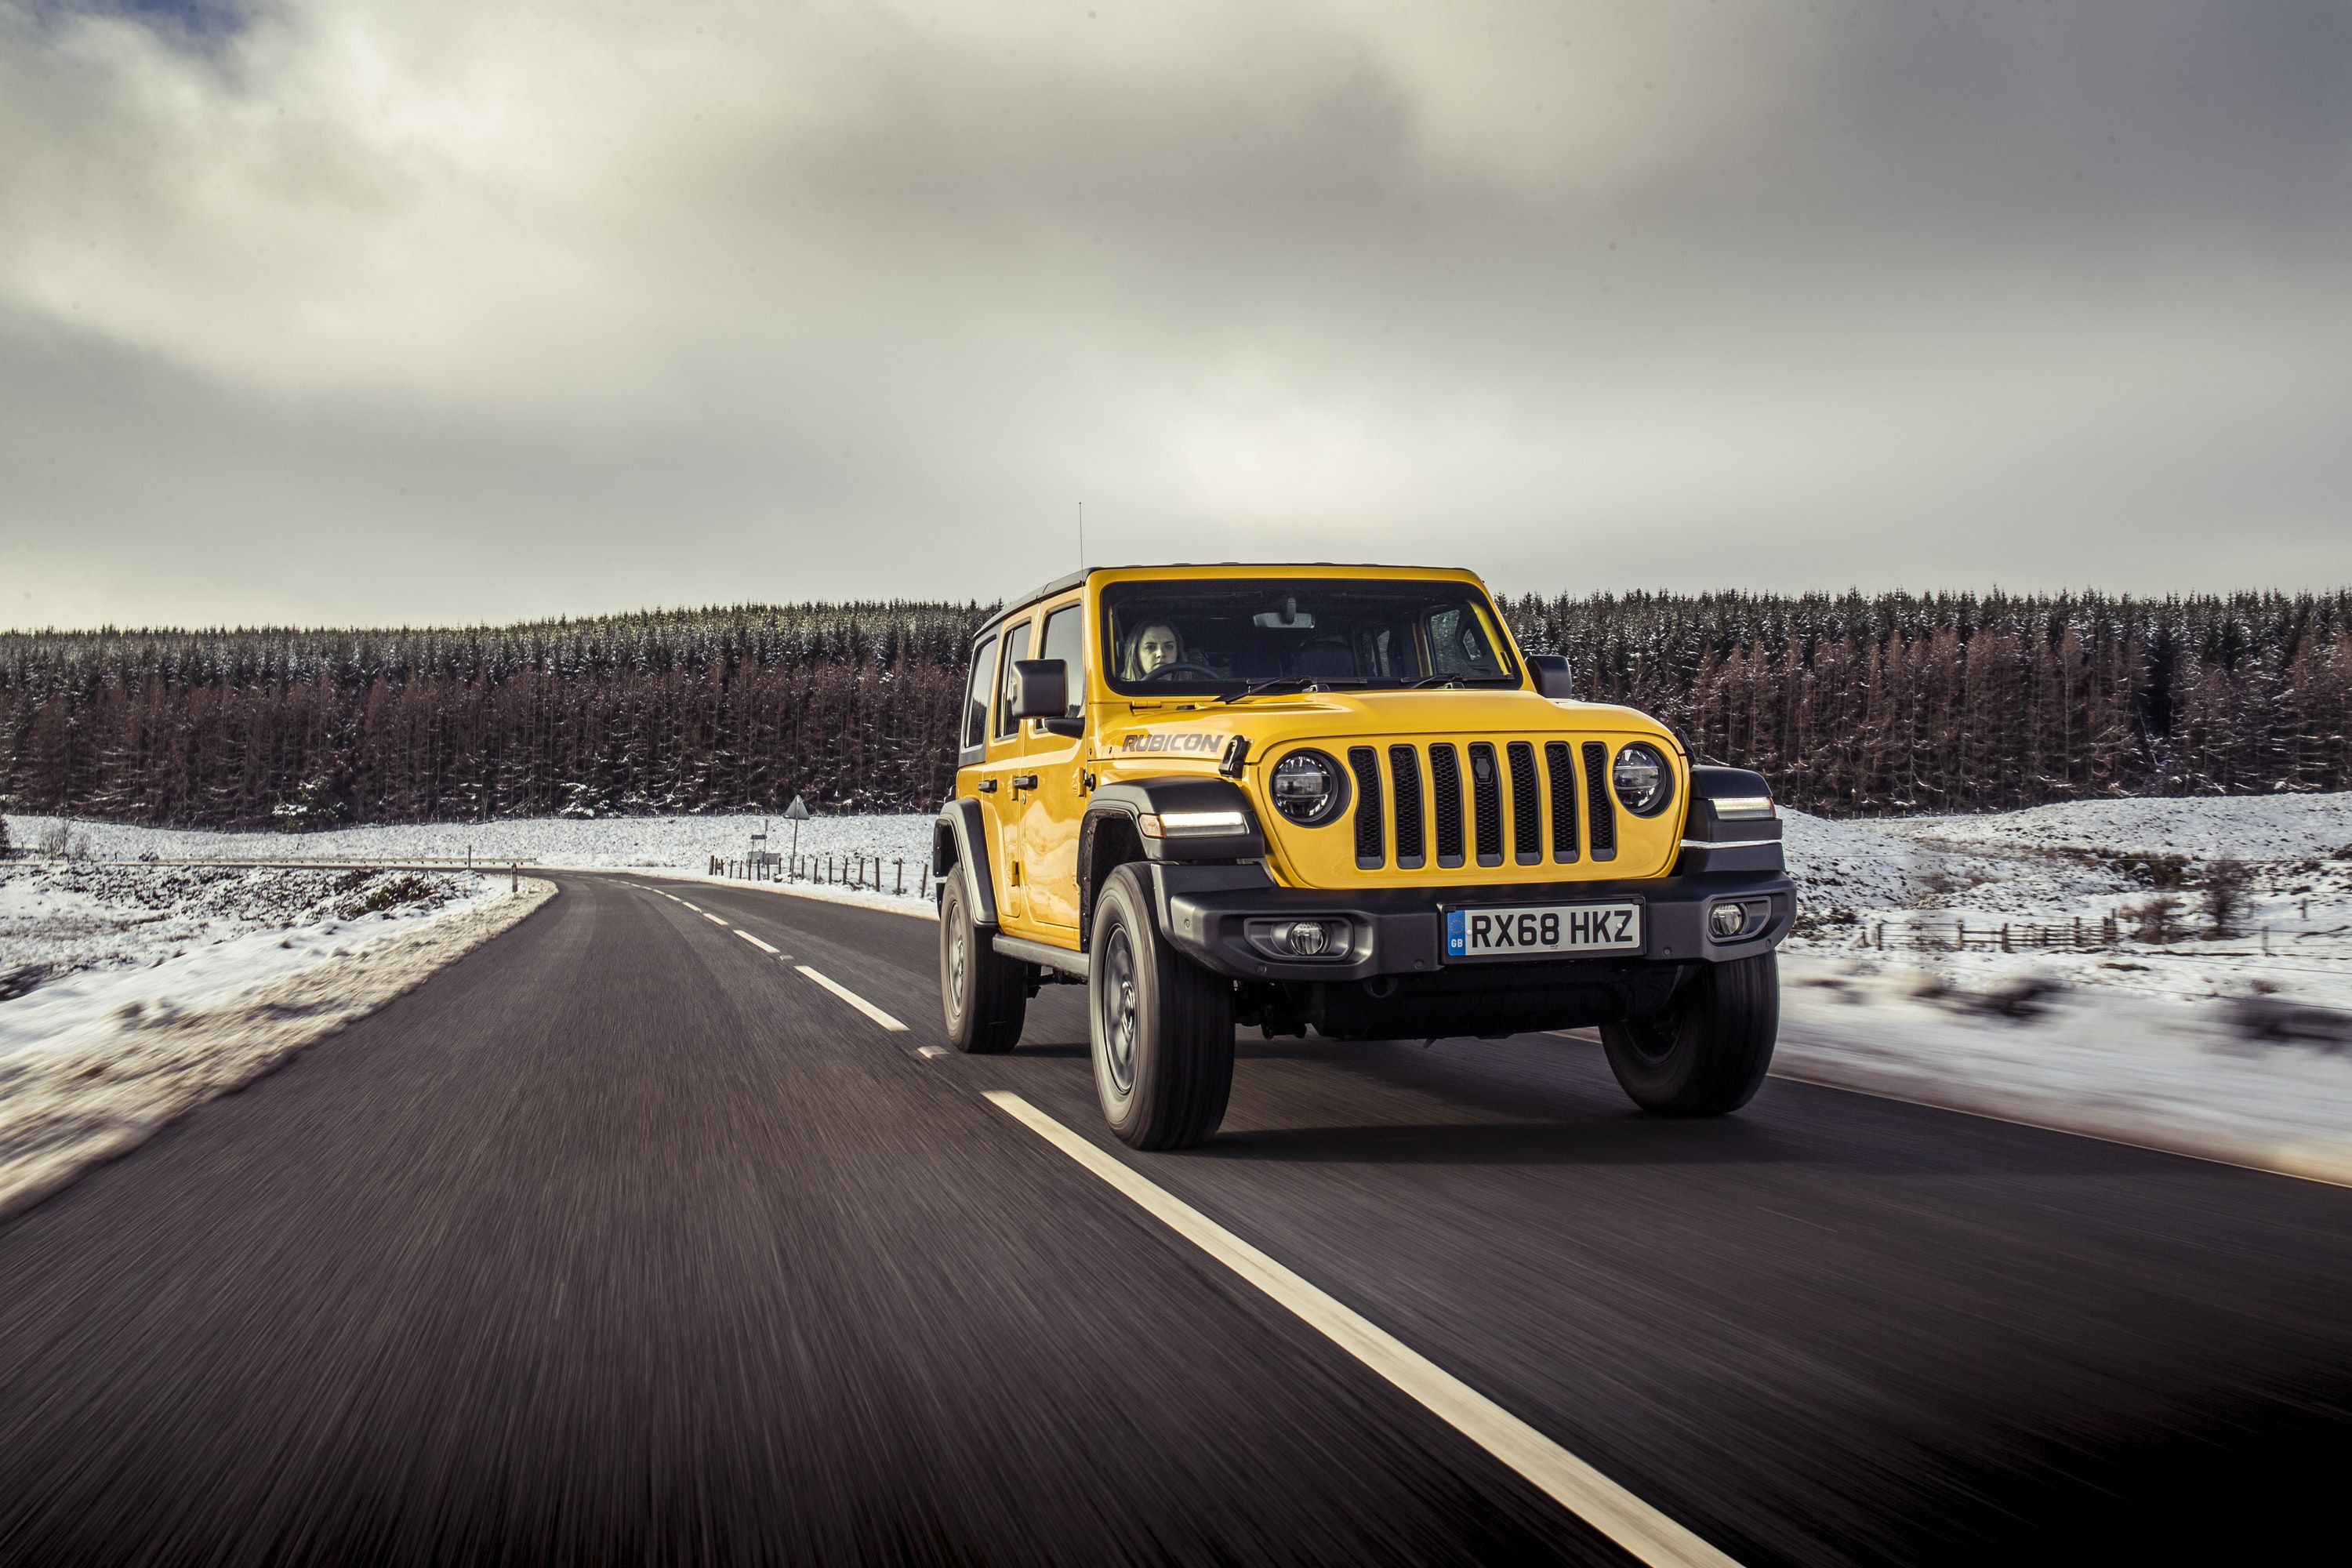 front view of yellow Jeep Wrangler driving on a road